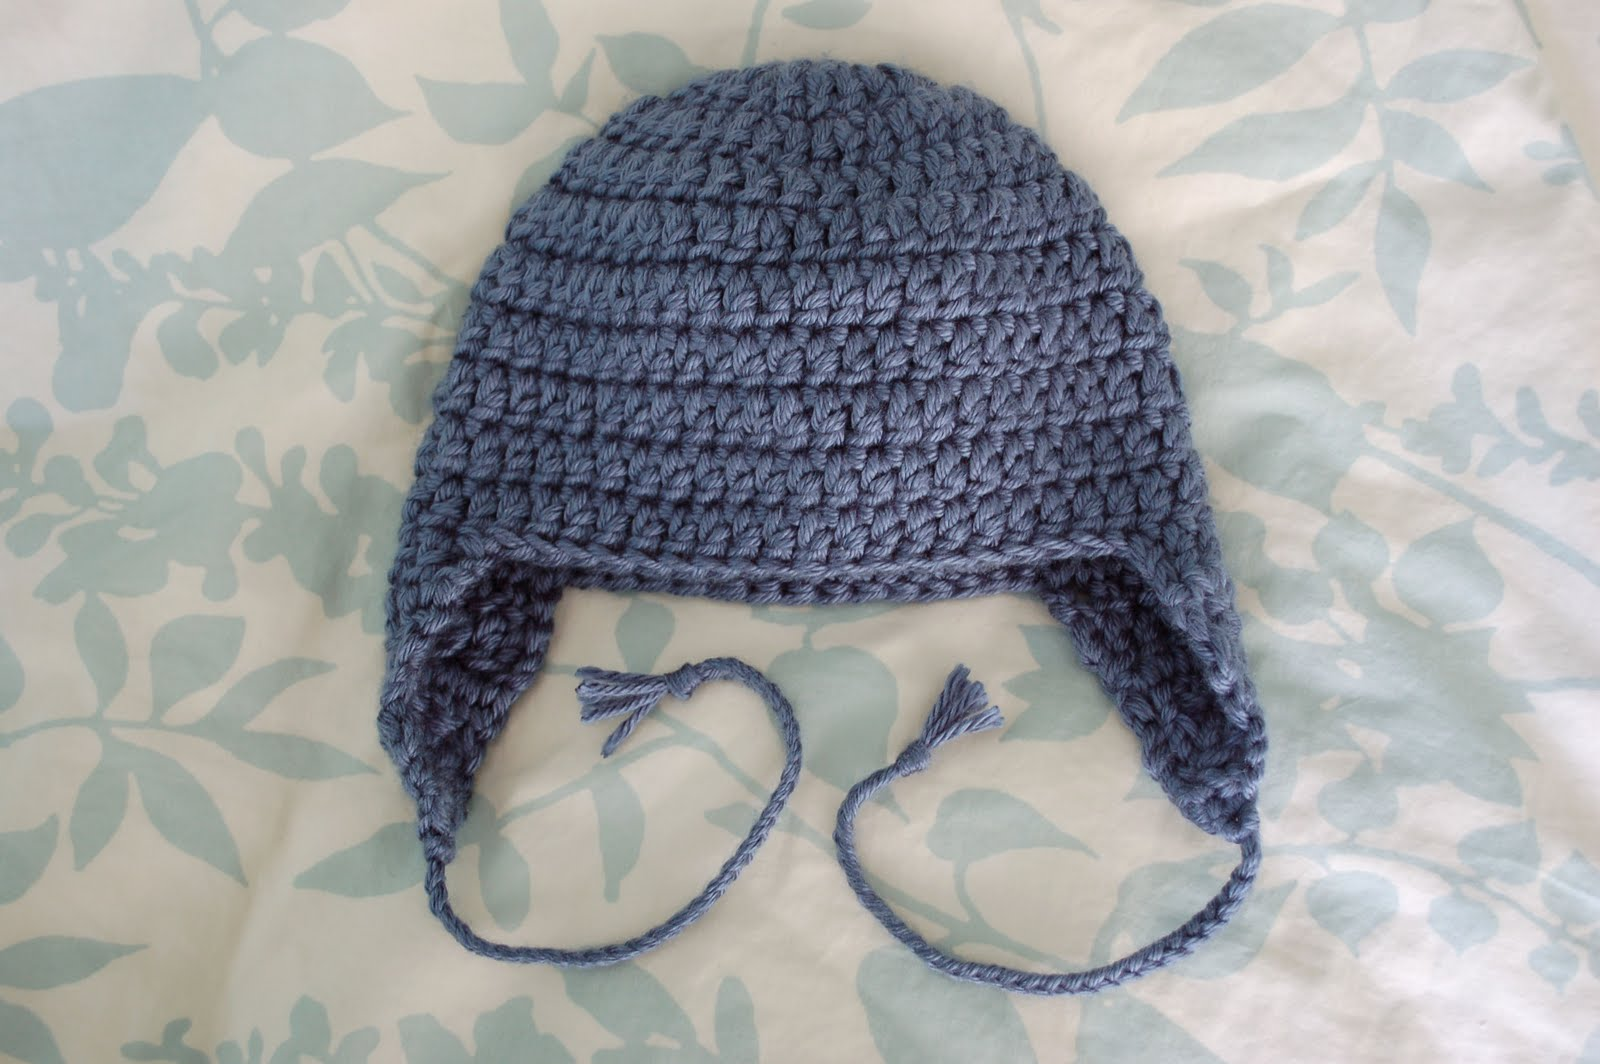 Crochet Earflap Hat : ... to earflap hat patterns in other sizes made using one strand of yarn